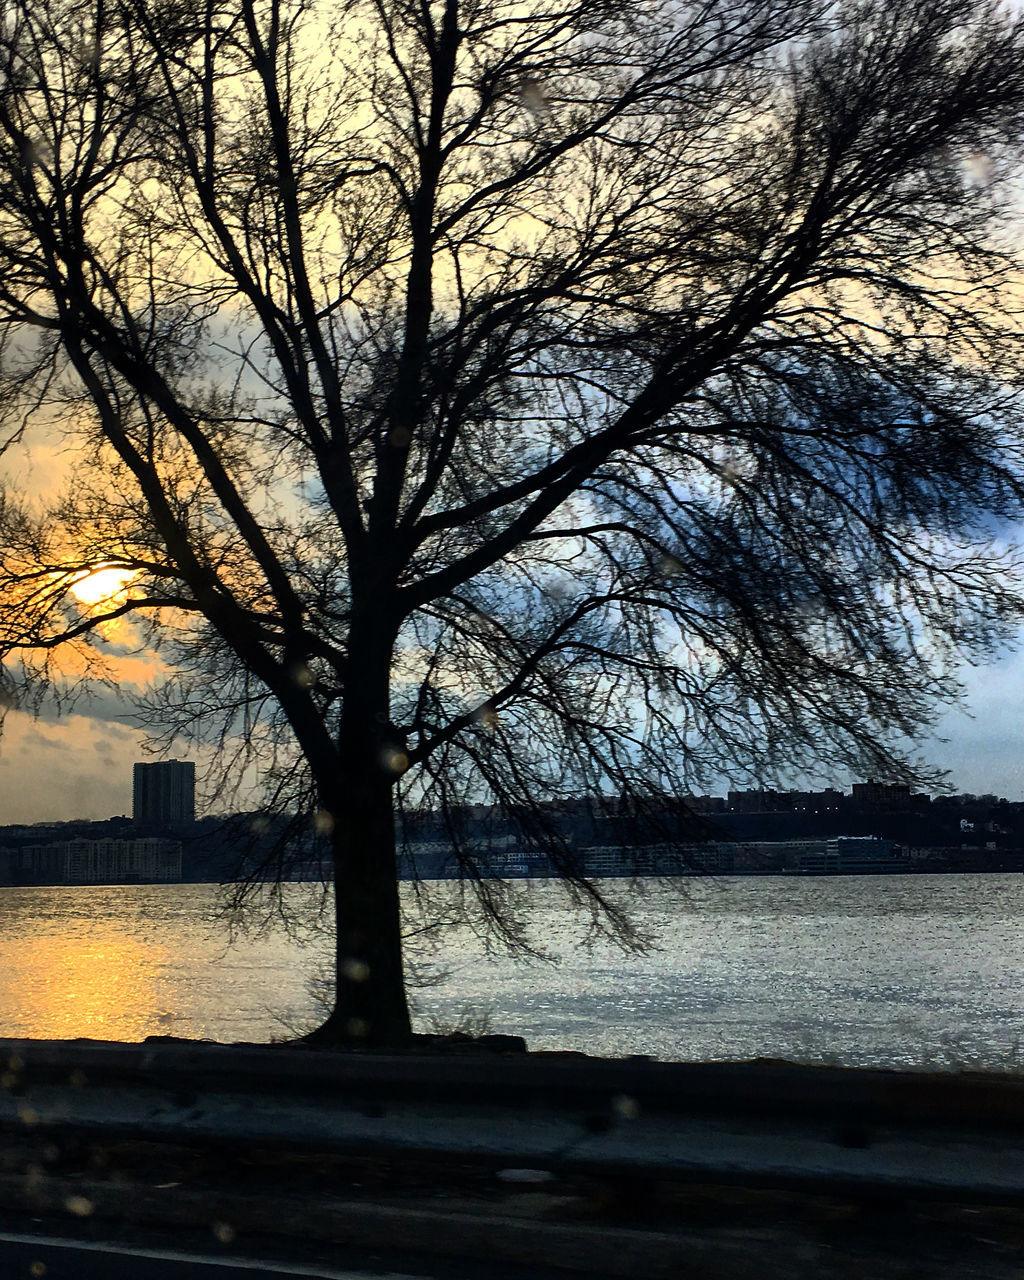 SILHOUETTE TREE BY RIVER AGAINST SKY DURING SUNSET